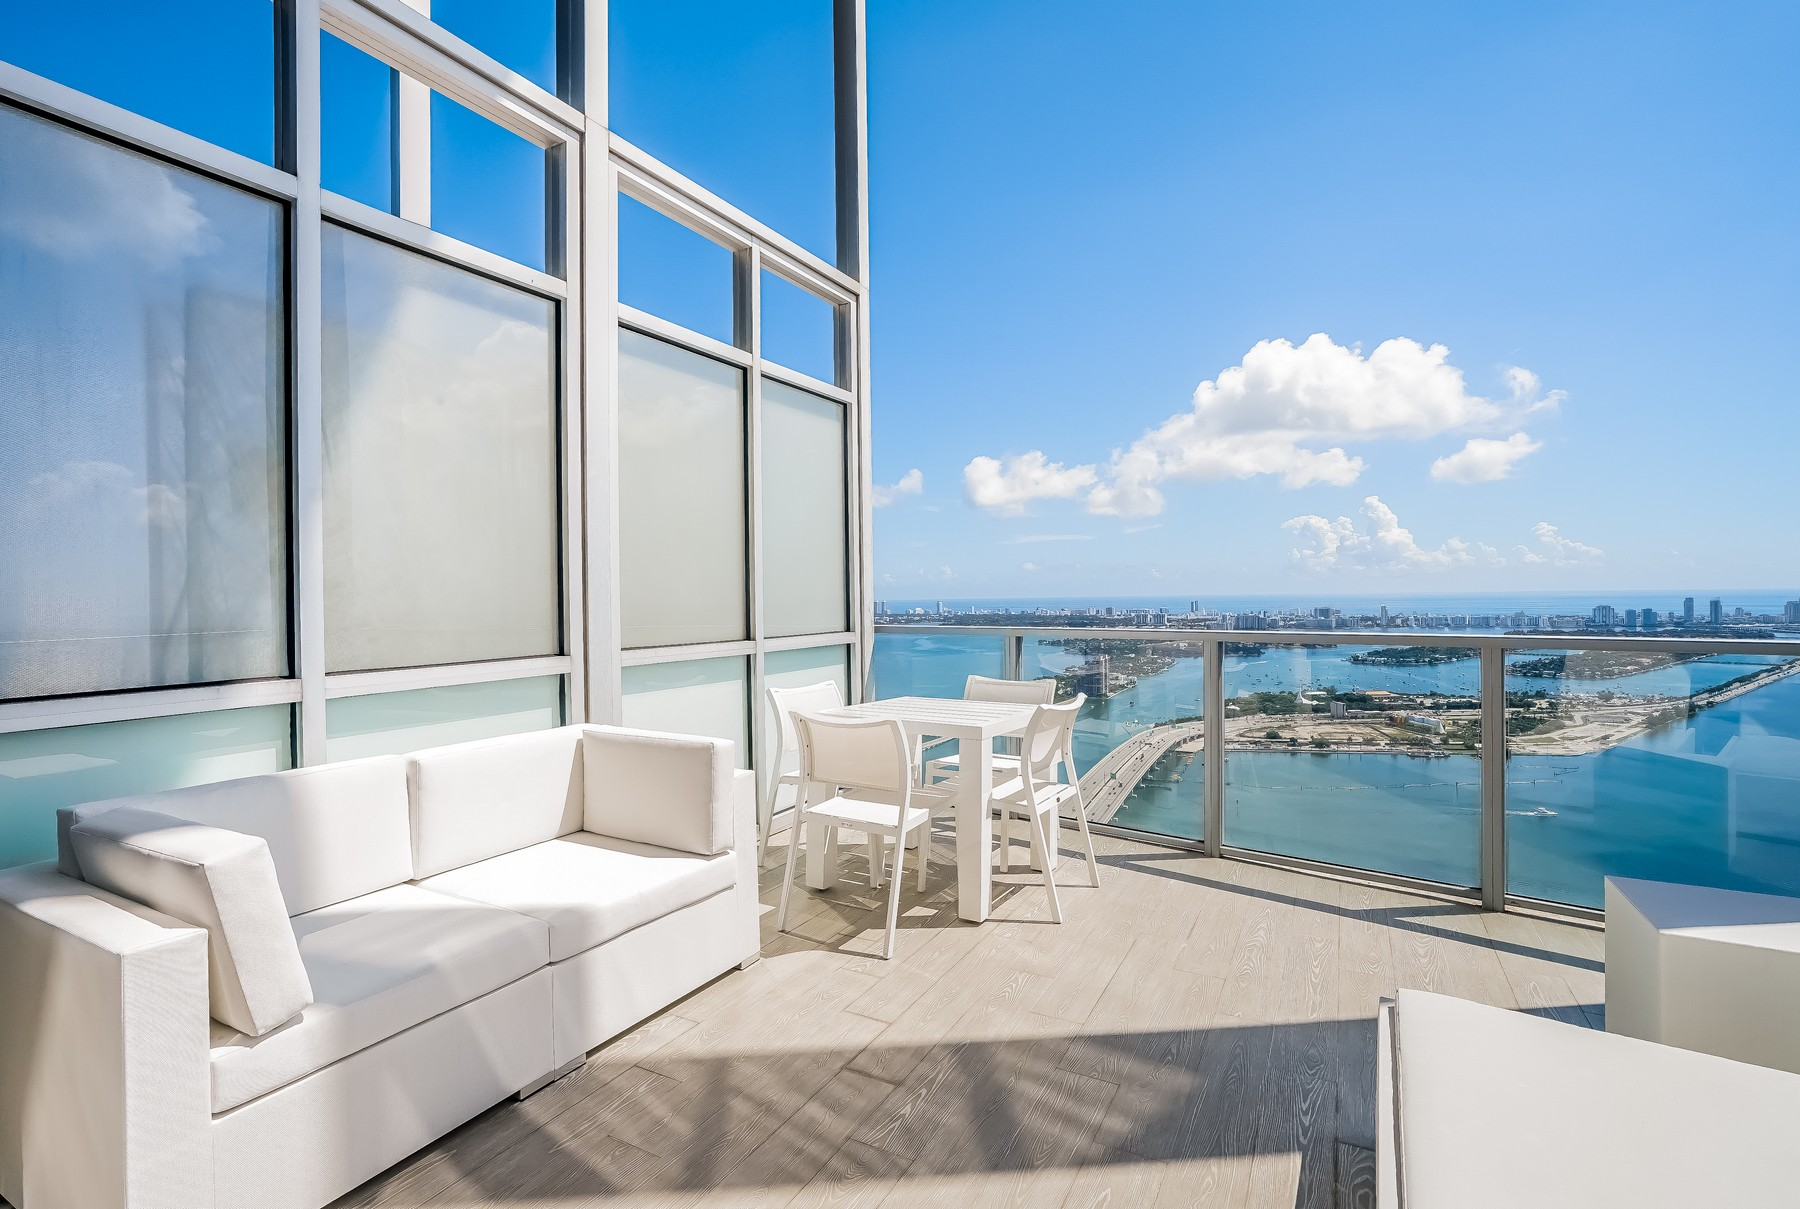 Condominium for Sale at 1100 Biscayne Blvd # PH6305 Miami, Florida 33132 United States